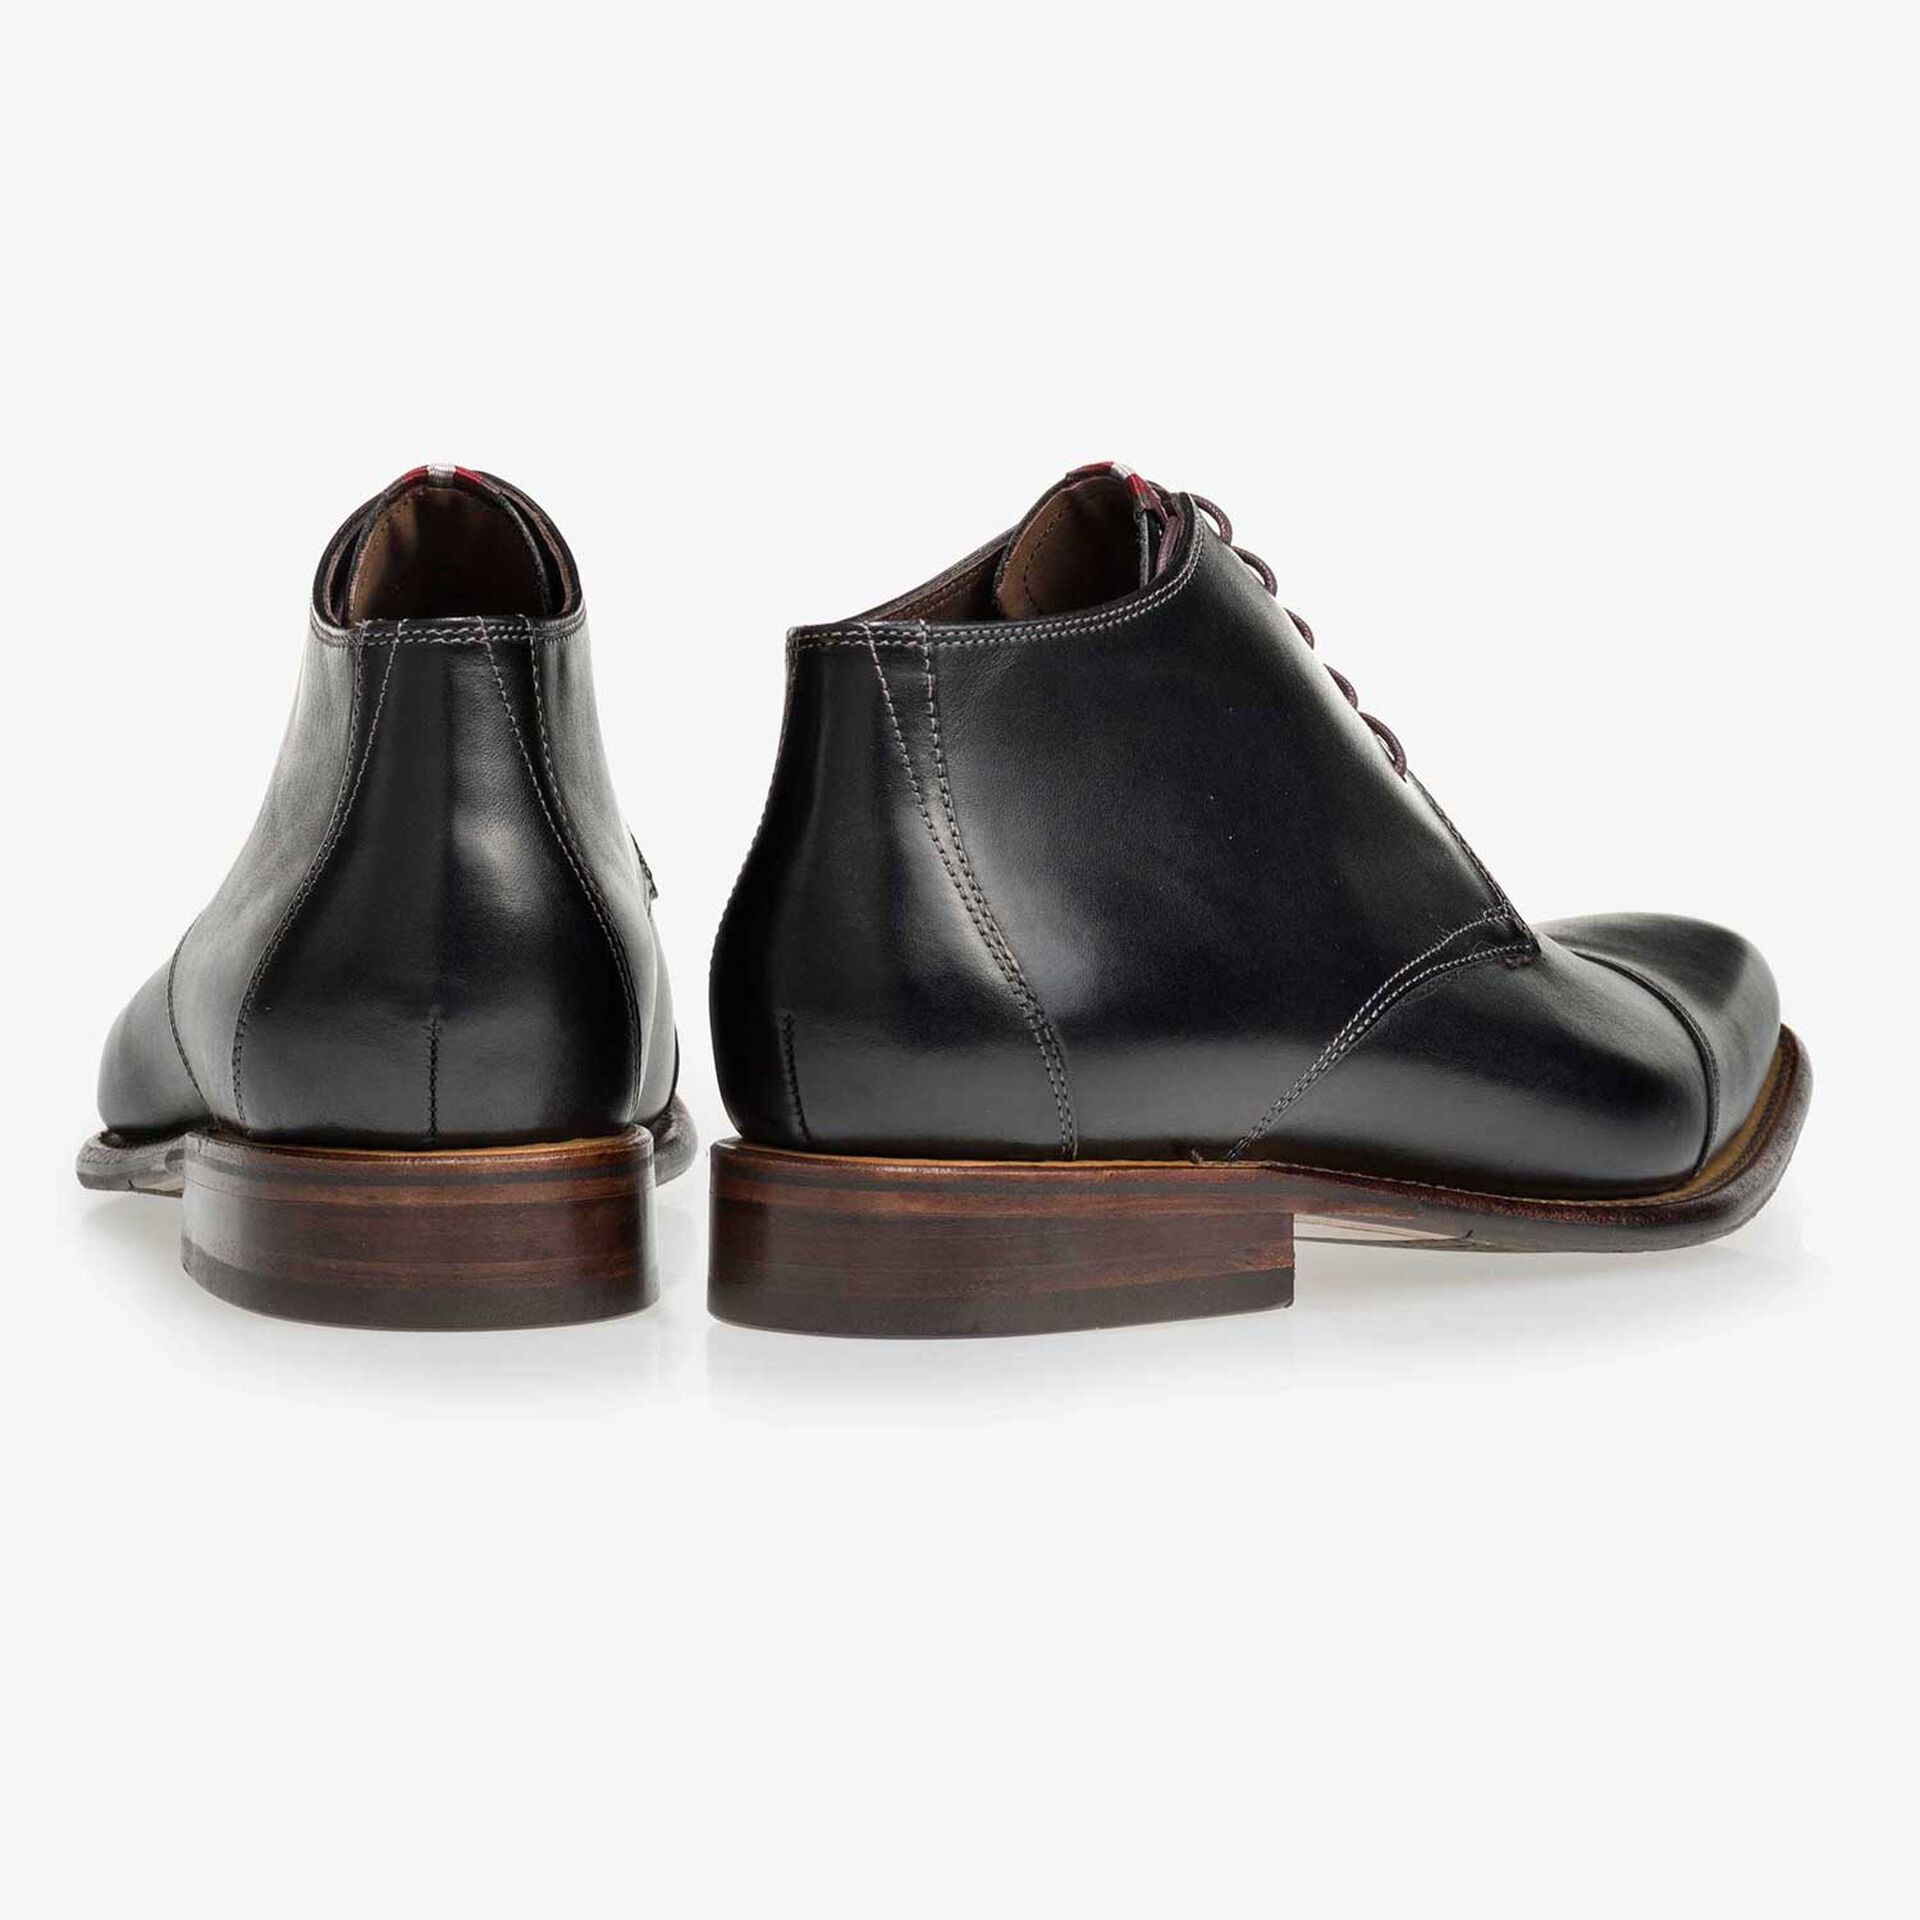 Floris van Bommel black leather half-high men's lace-up boot